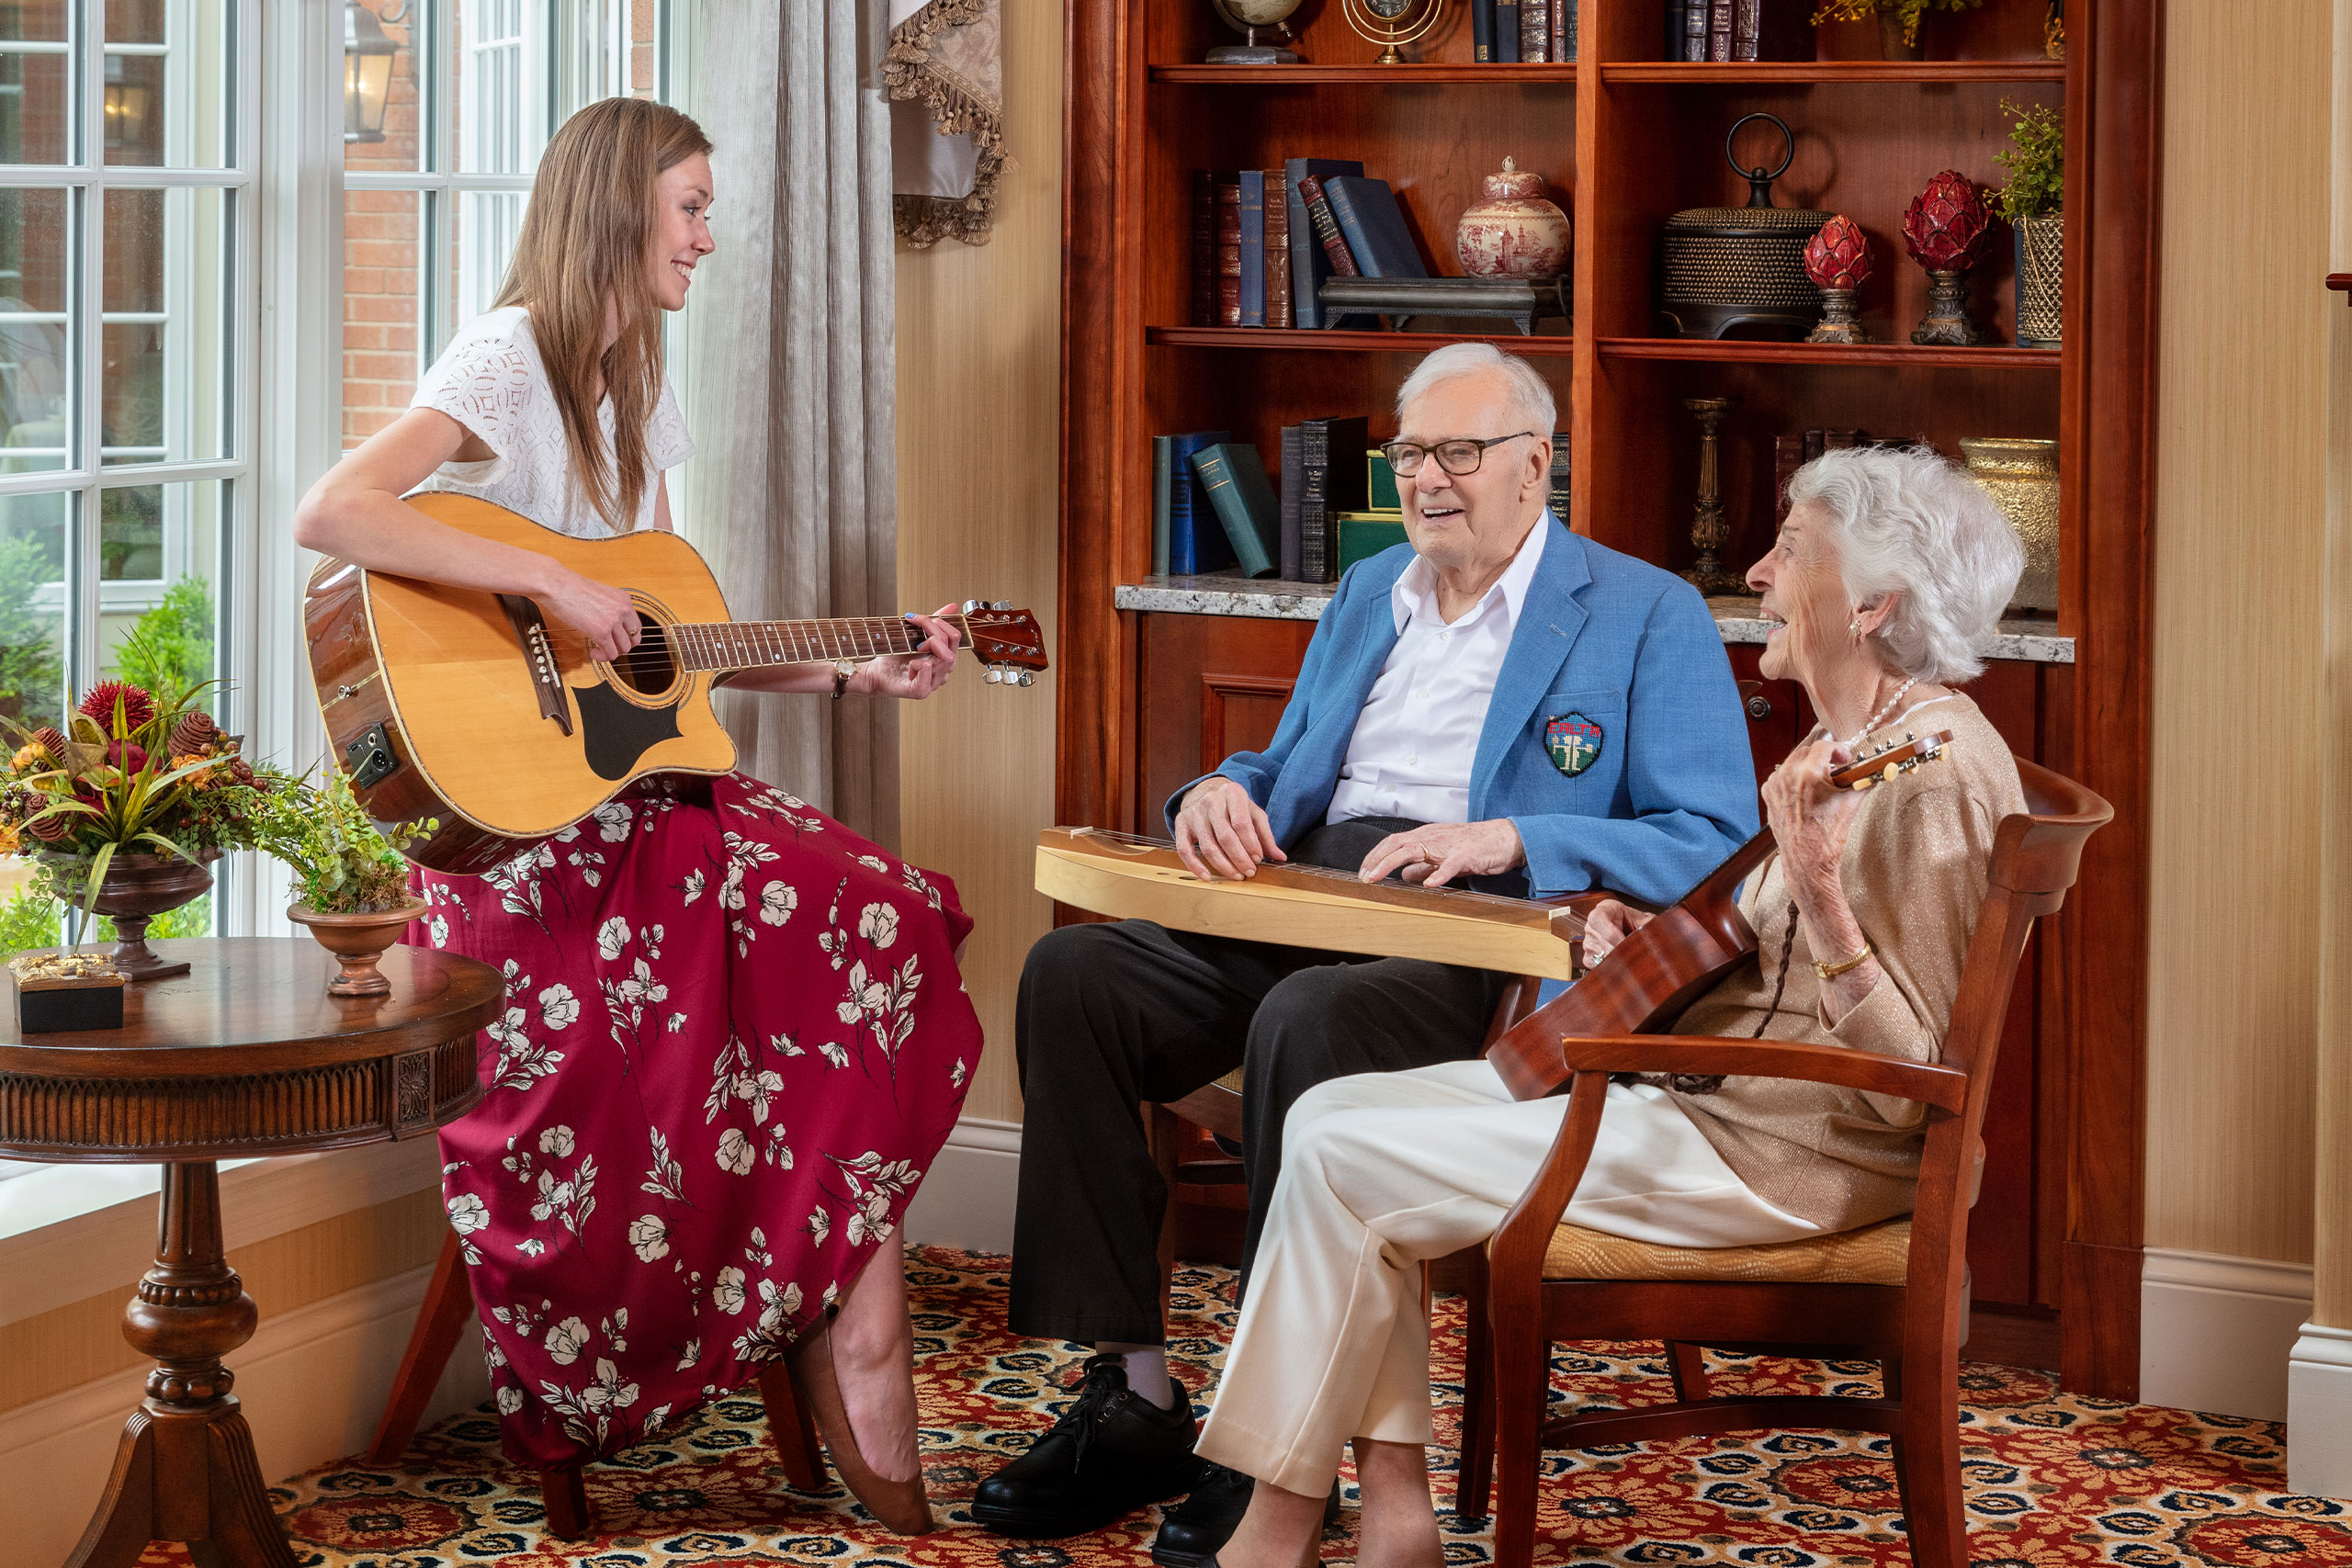 Music Therapist in a lesson with residents.